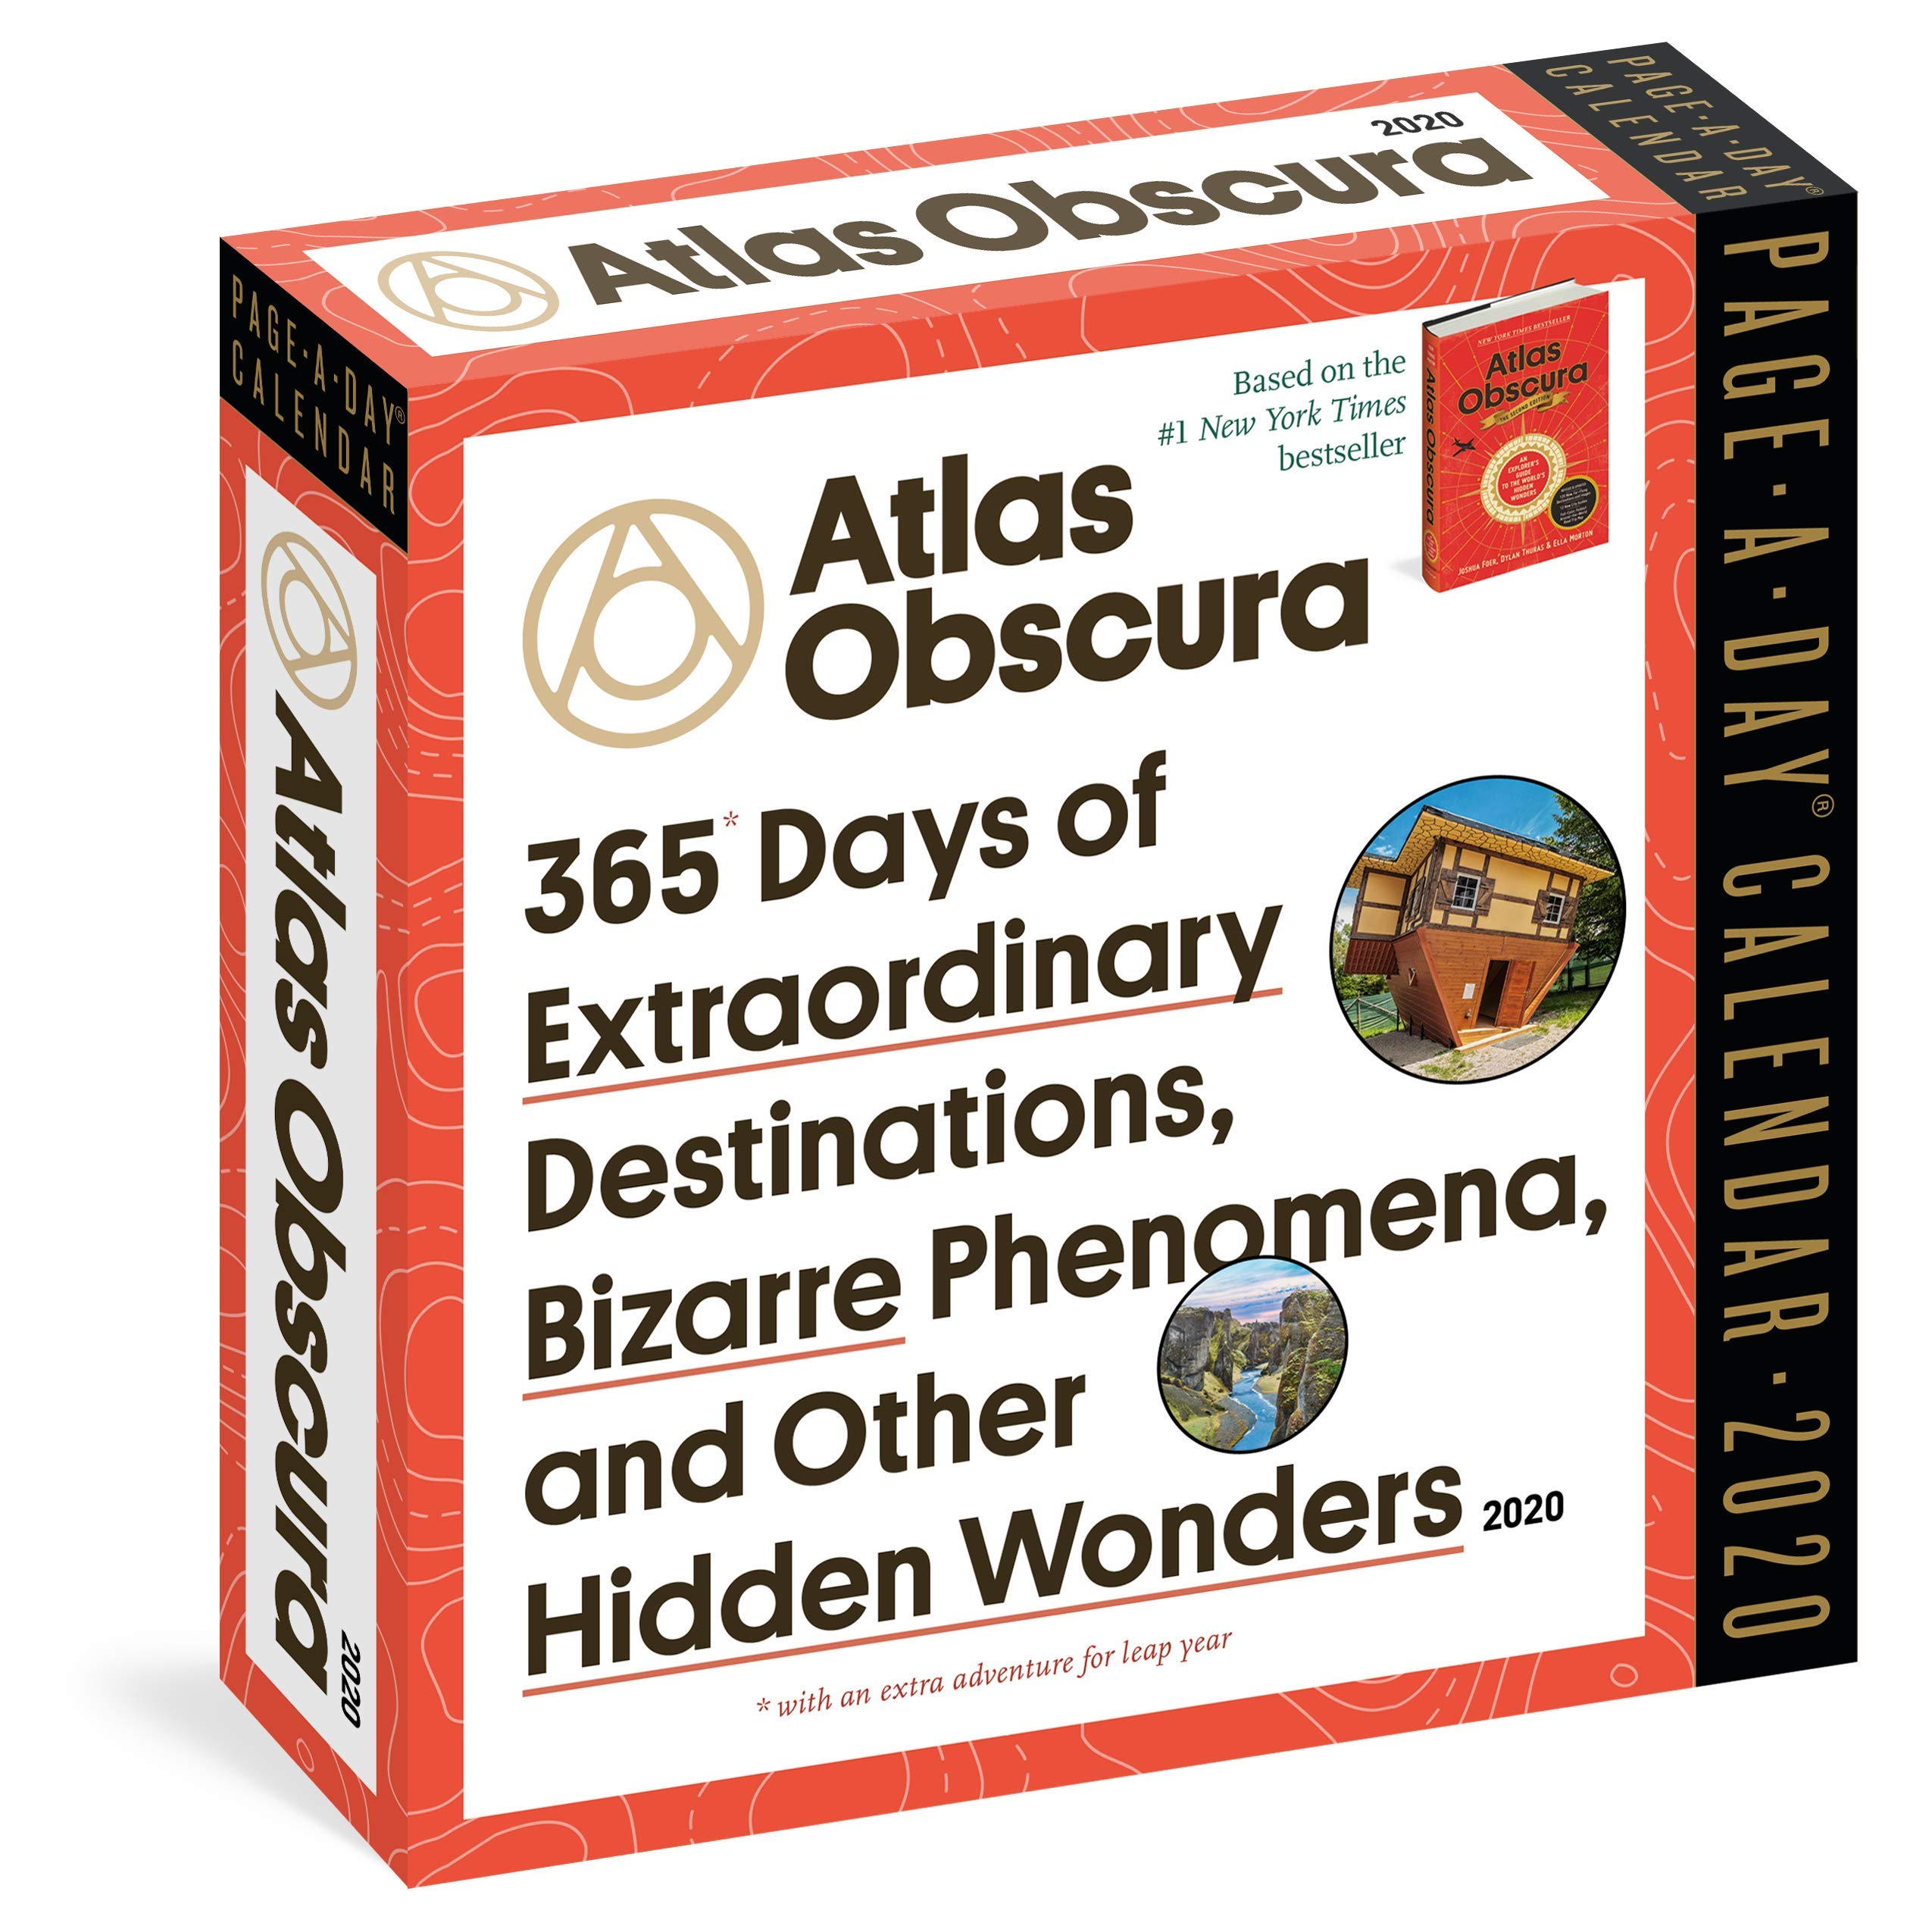 Day To Day Calendar 2020 Atlas Obscura Page A Day Calendar 2020: Atlas Obscura